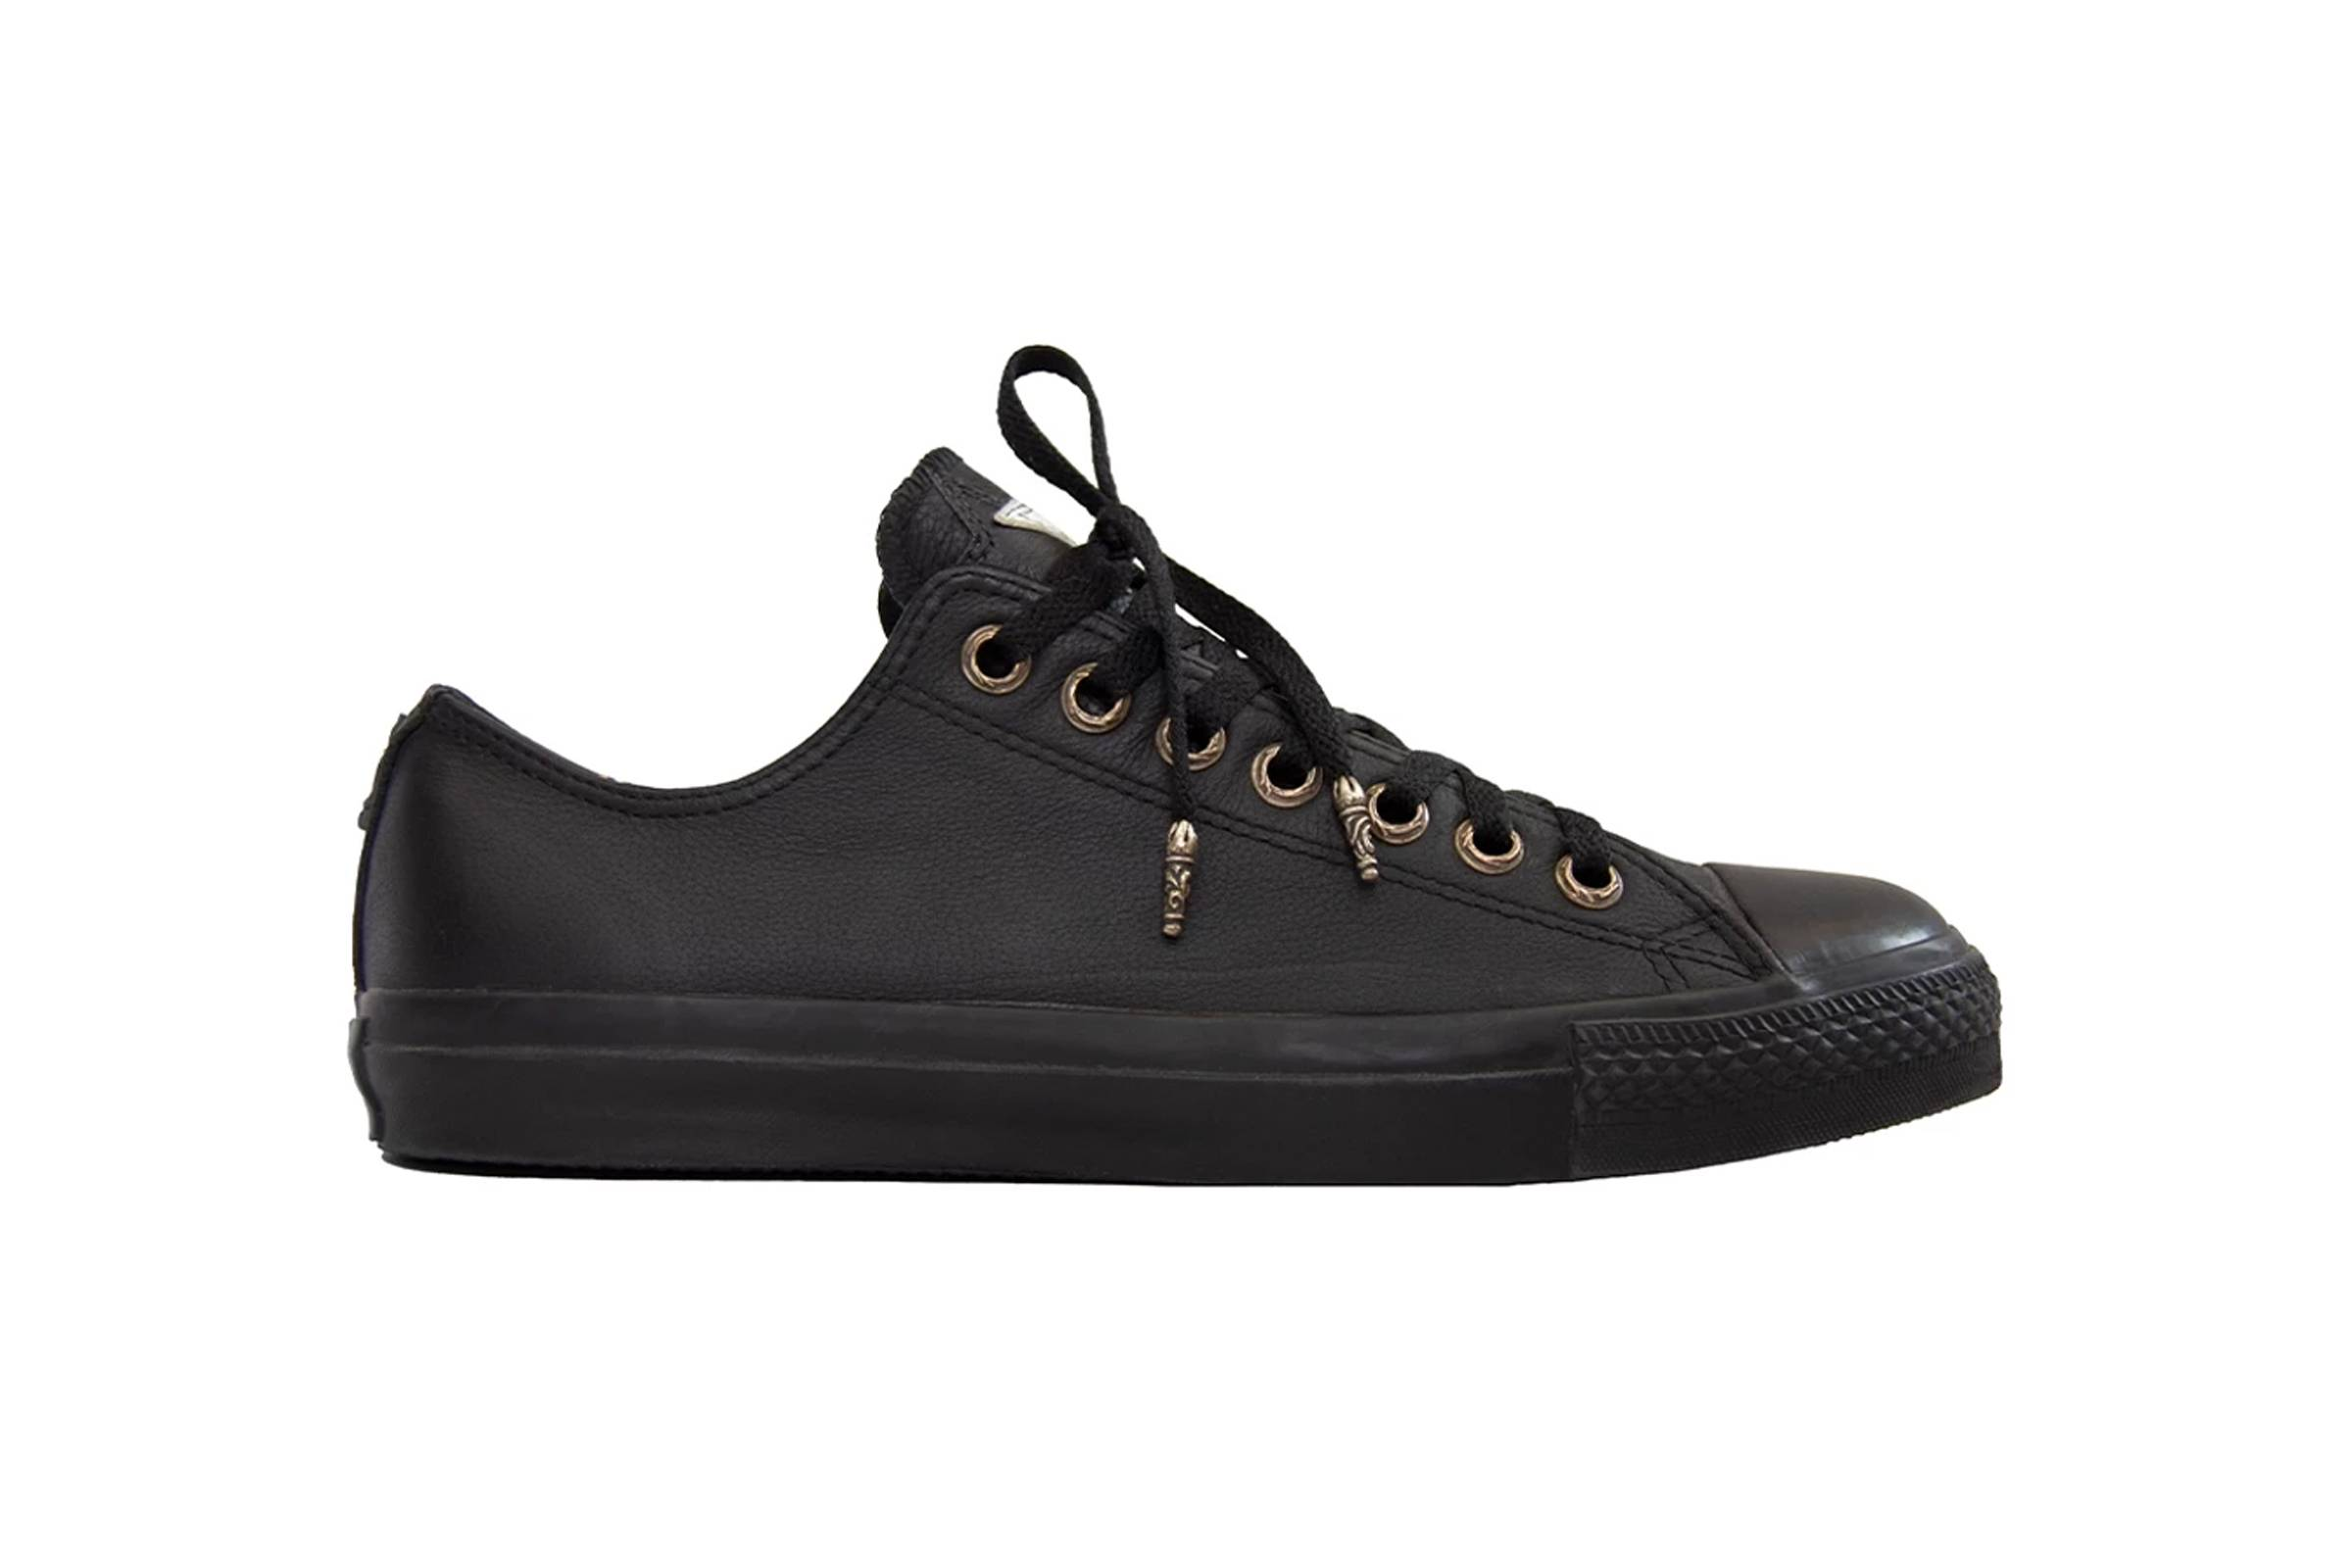 Chrome Hearts x Coverse .925 Silver Embelleshed All-Star Low